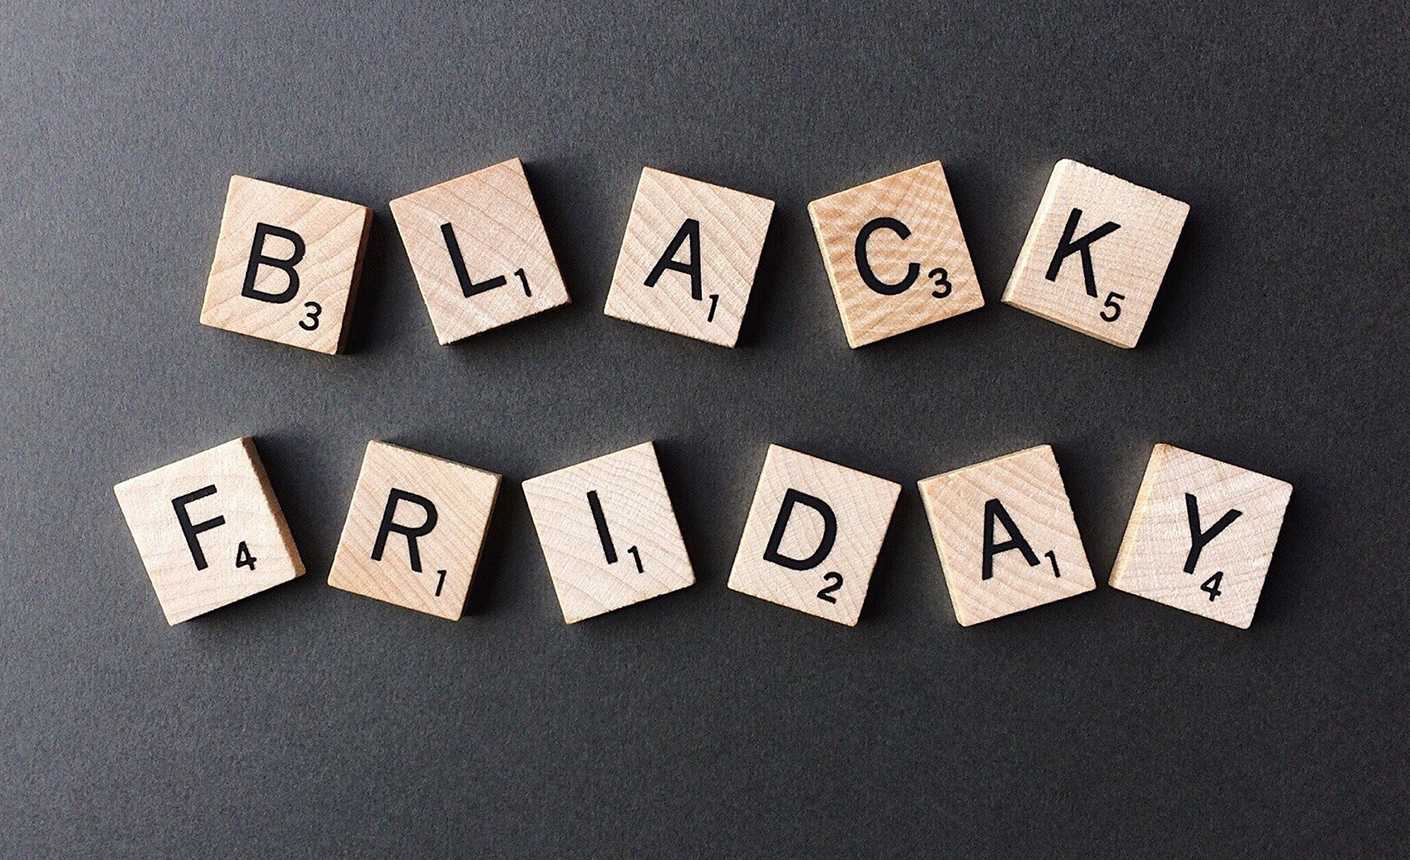 Black Friday Shopping Tips You Have to Keep in Mind